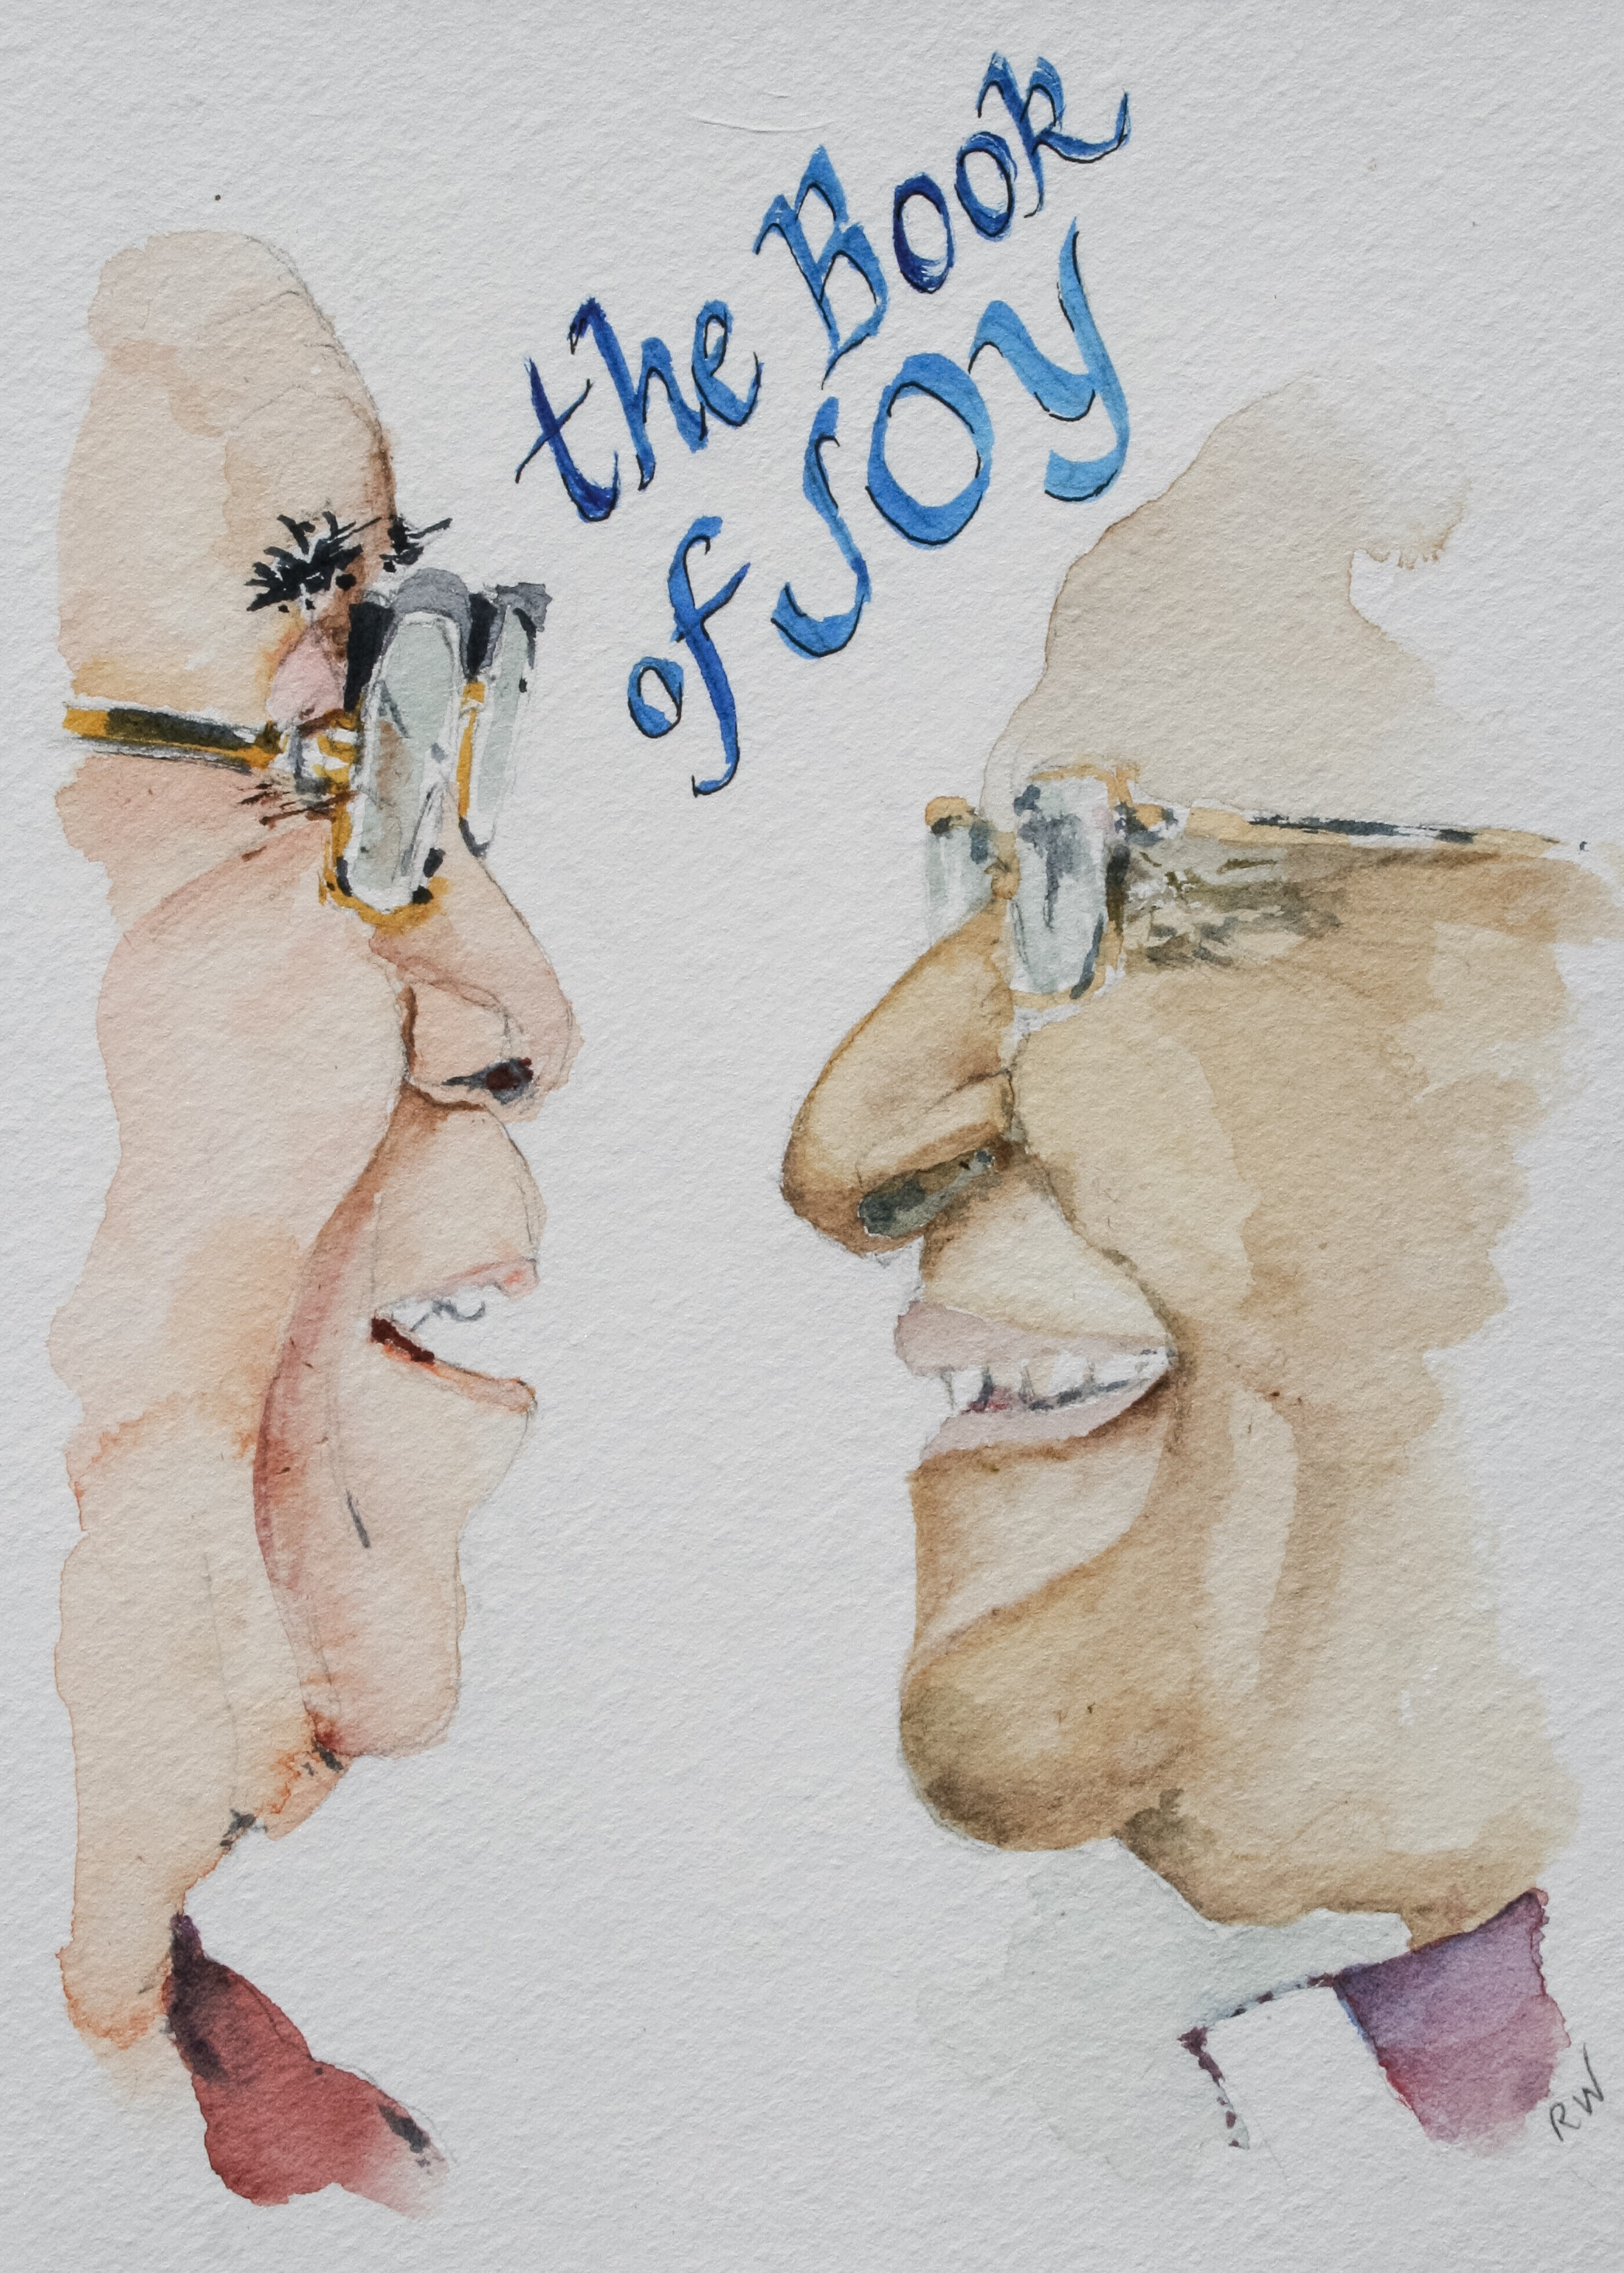 Watercolor book covers - Watercolor Sketch Of His Holiness The Dalai Lama And Archbishop Desmond Tutu From The Book Of